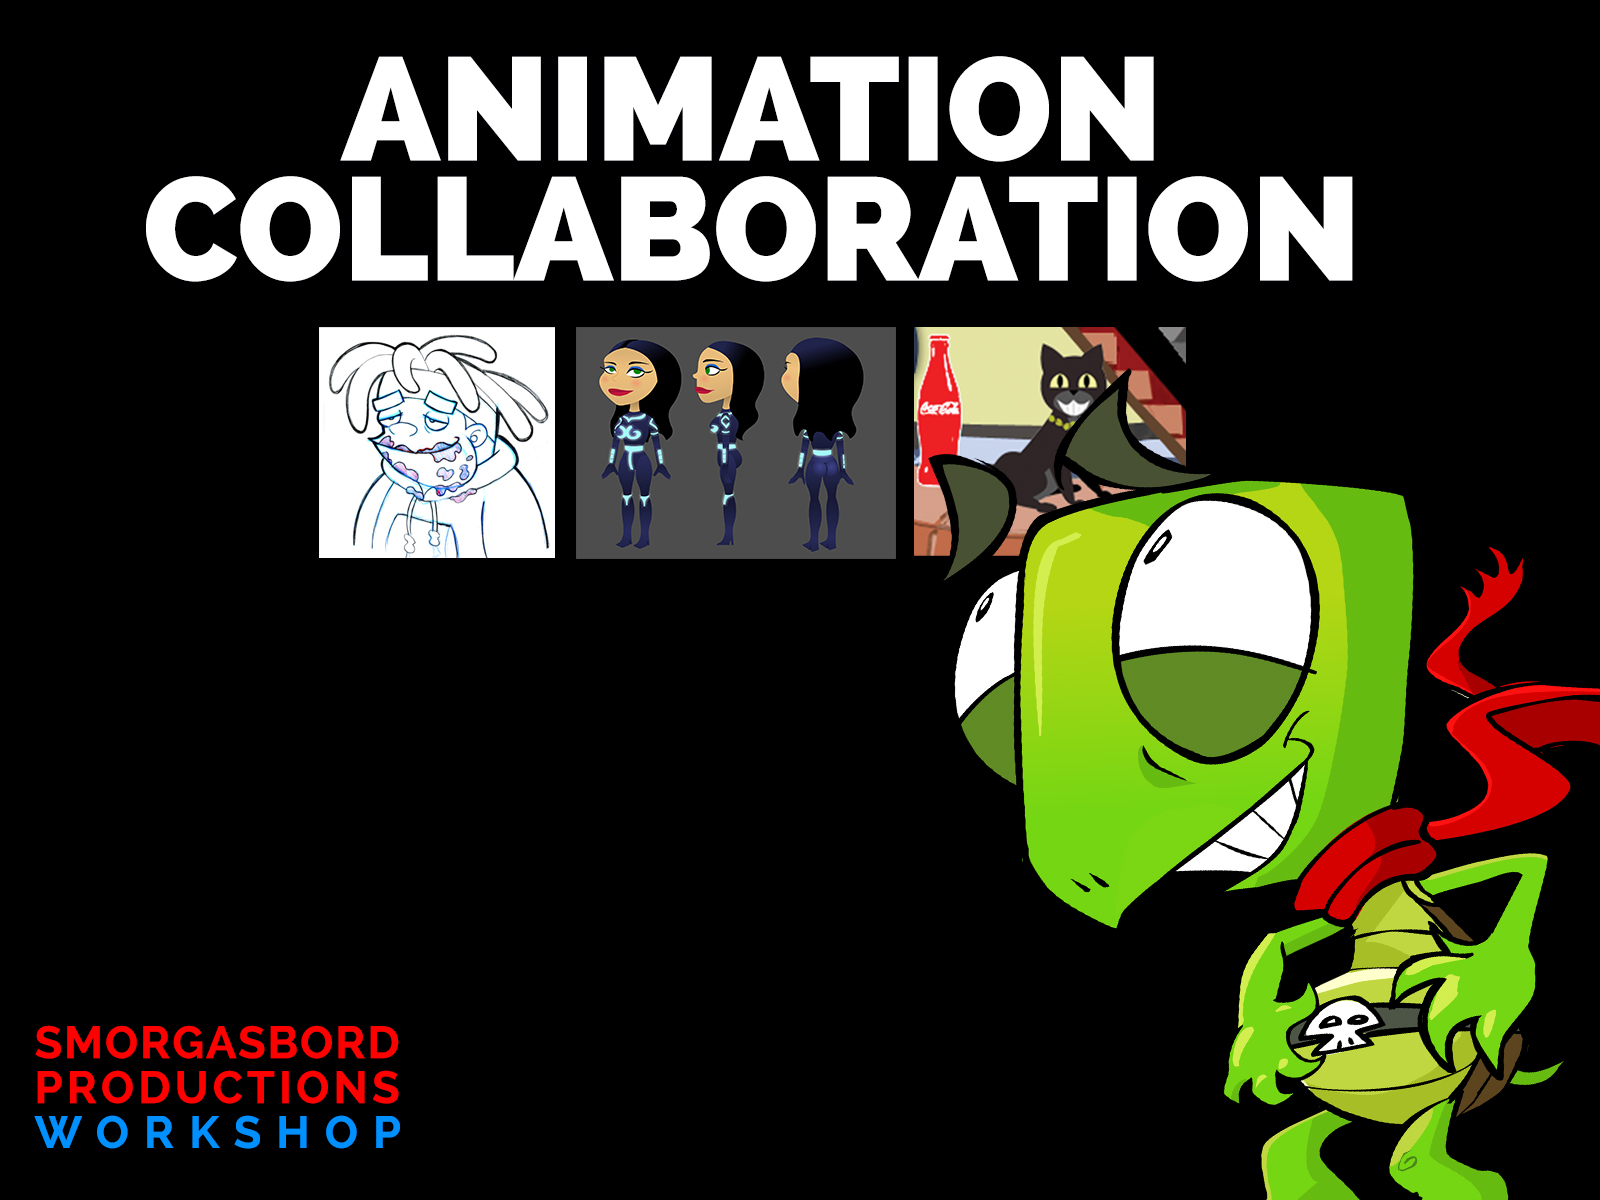 Come Join Us For FREE OPEN HOUSE Trial Art/Animation Class.